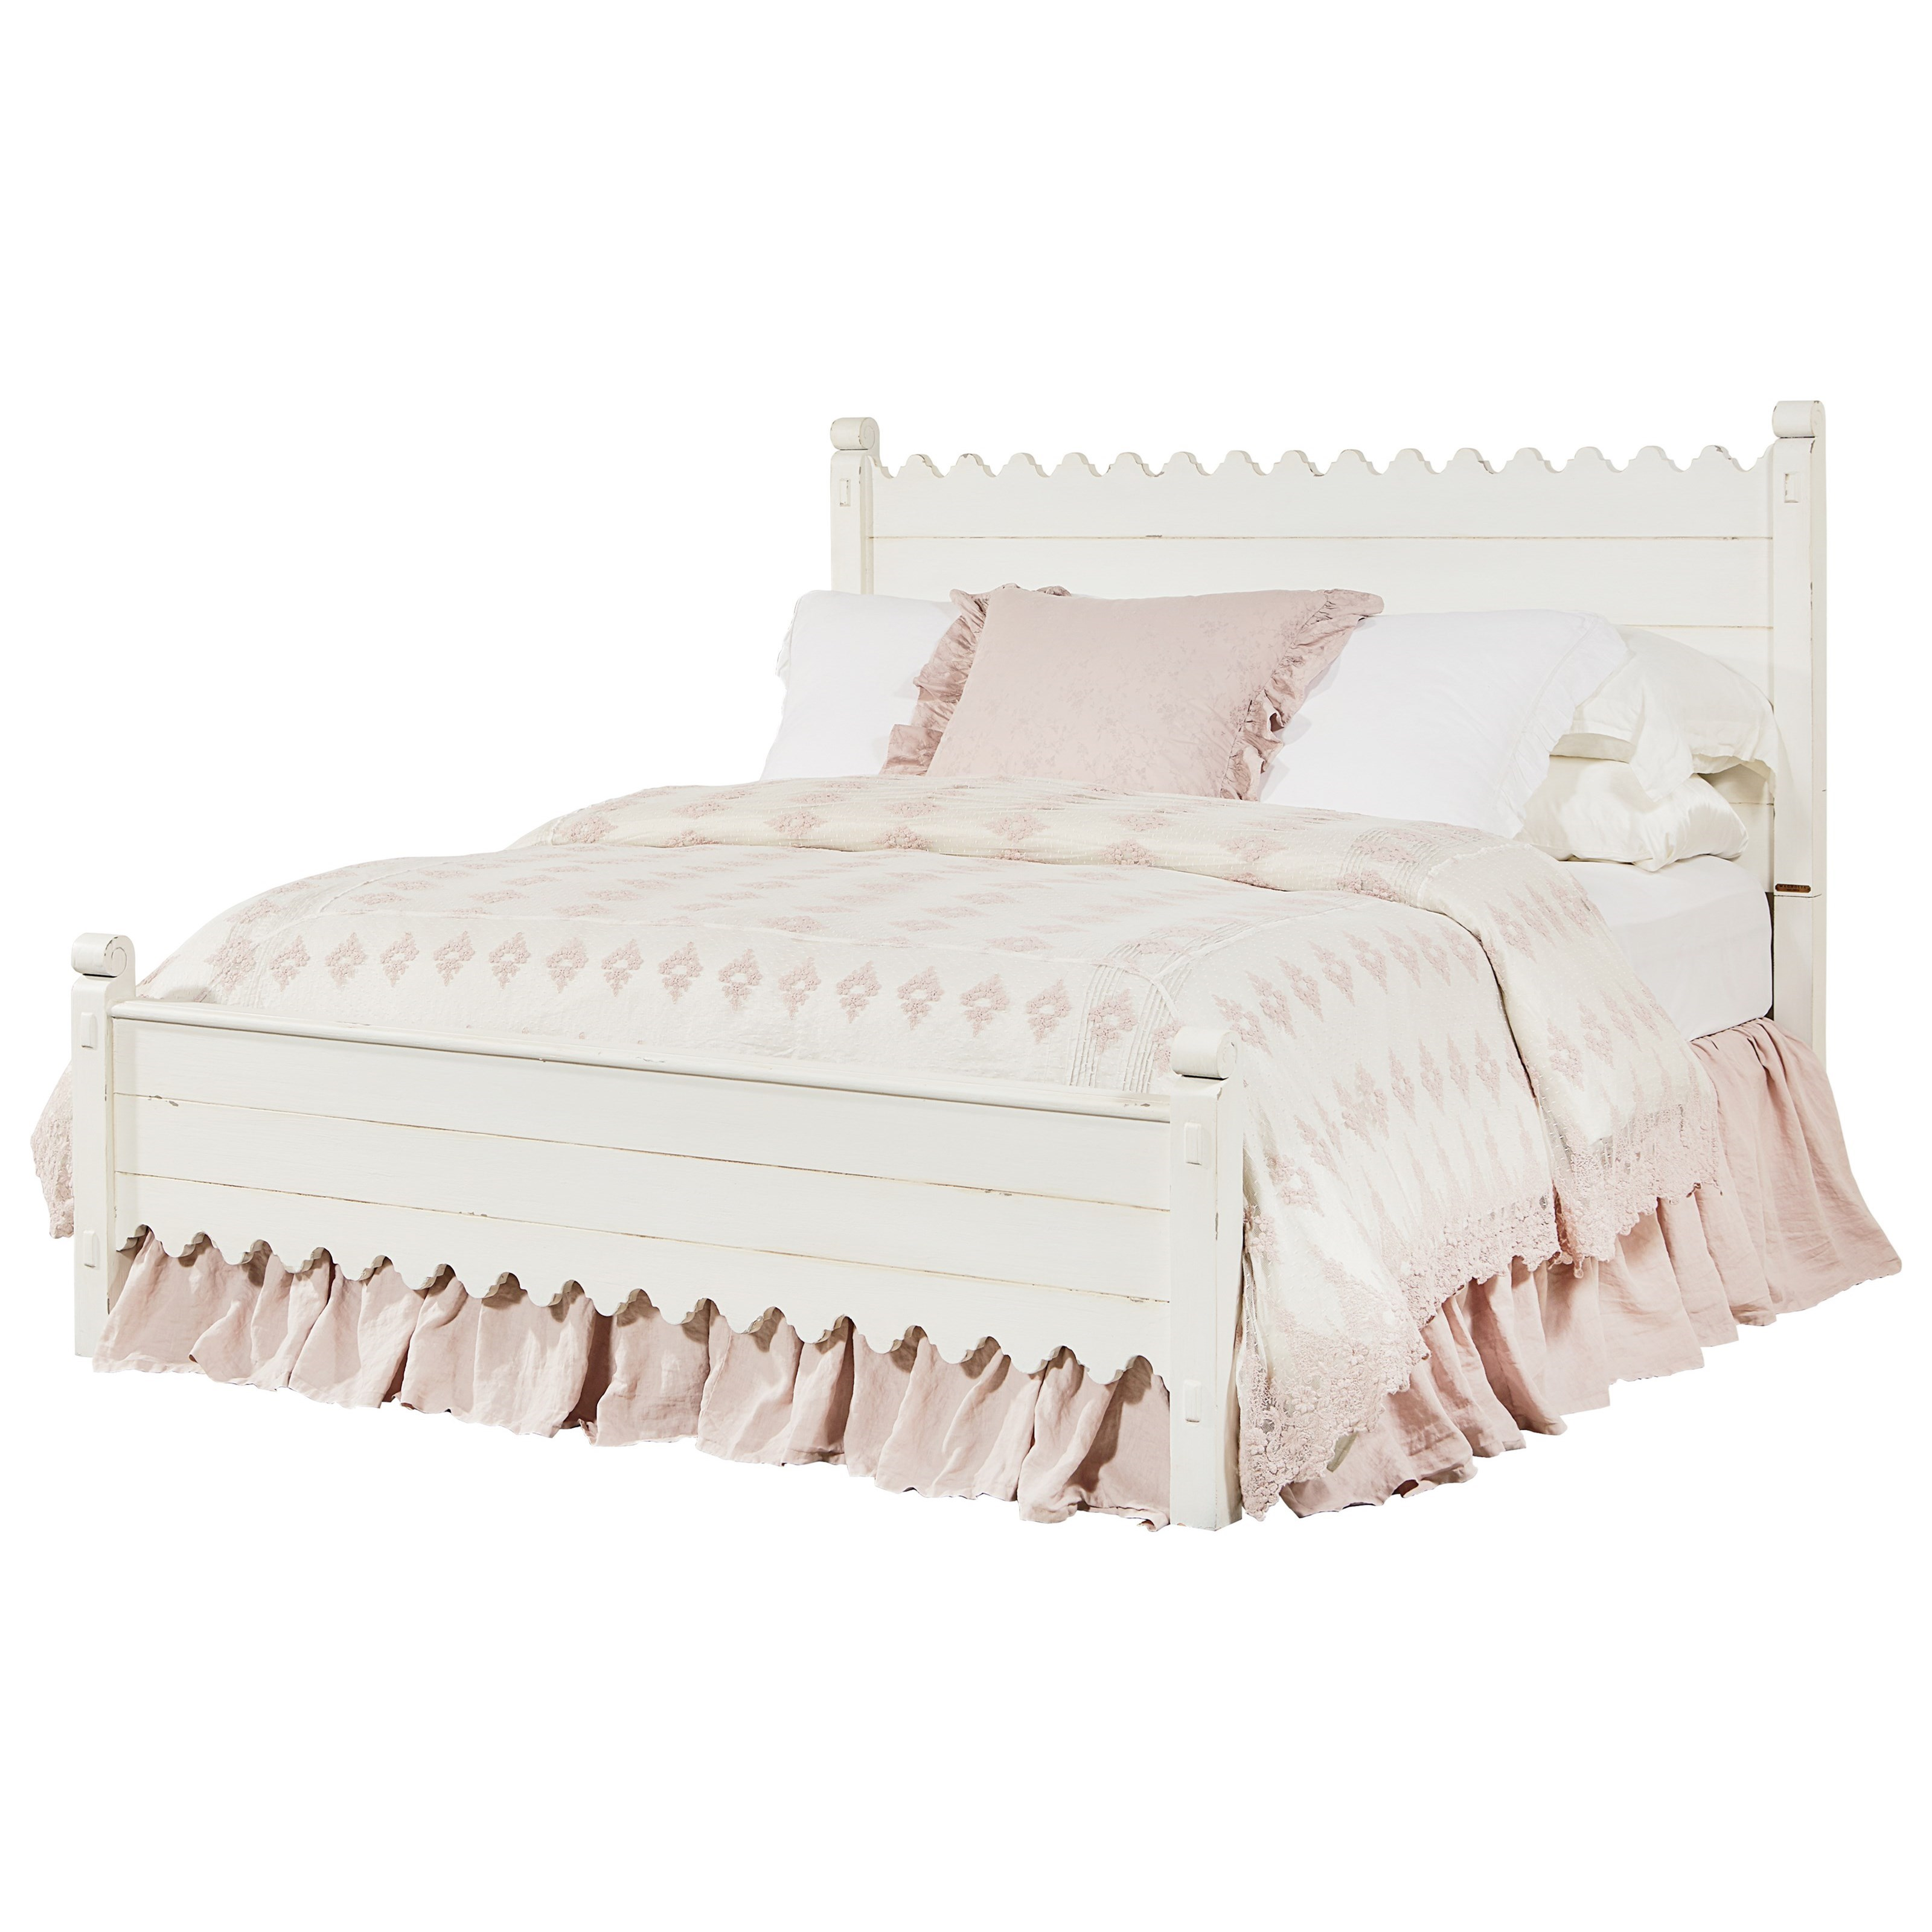 Magnolia home by joanna gaines farmhouse king bed with - Joanna gaines bedding collection ...